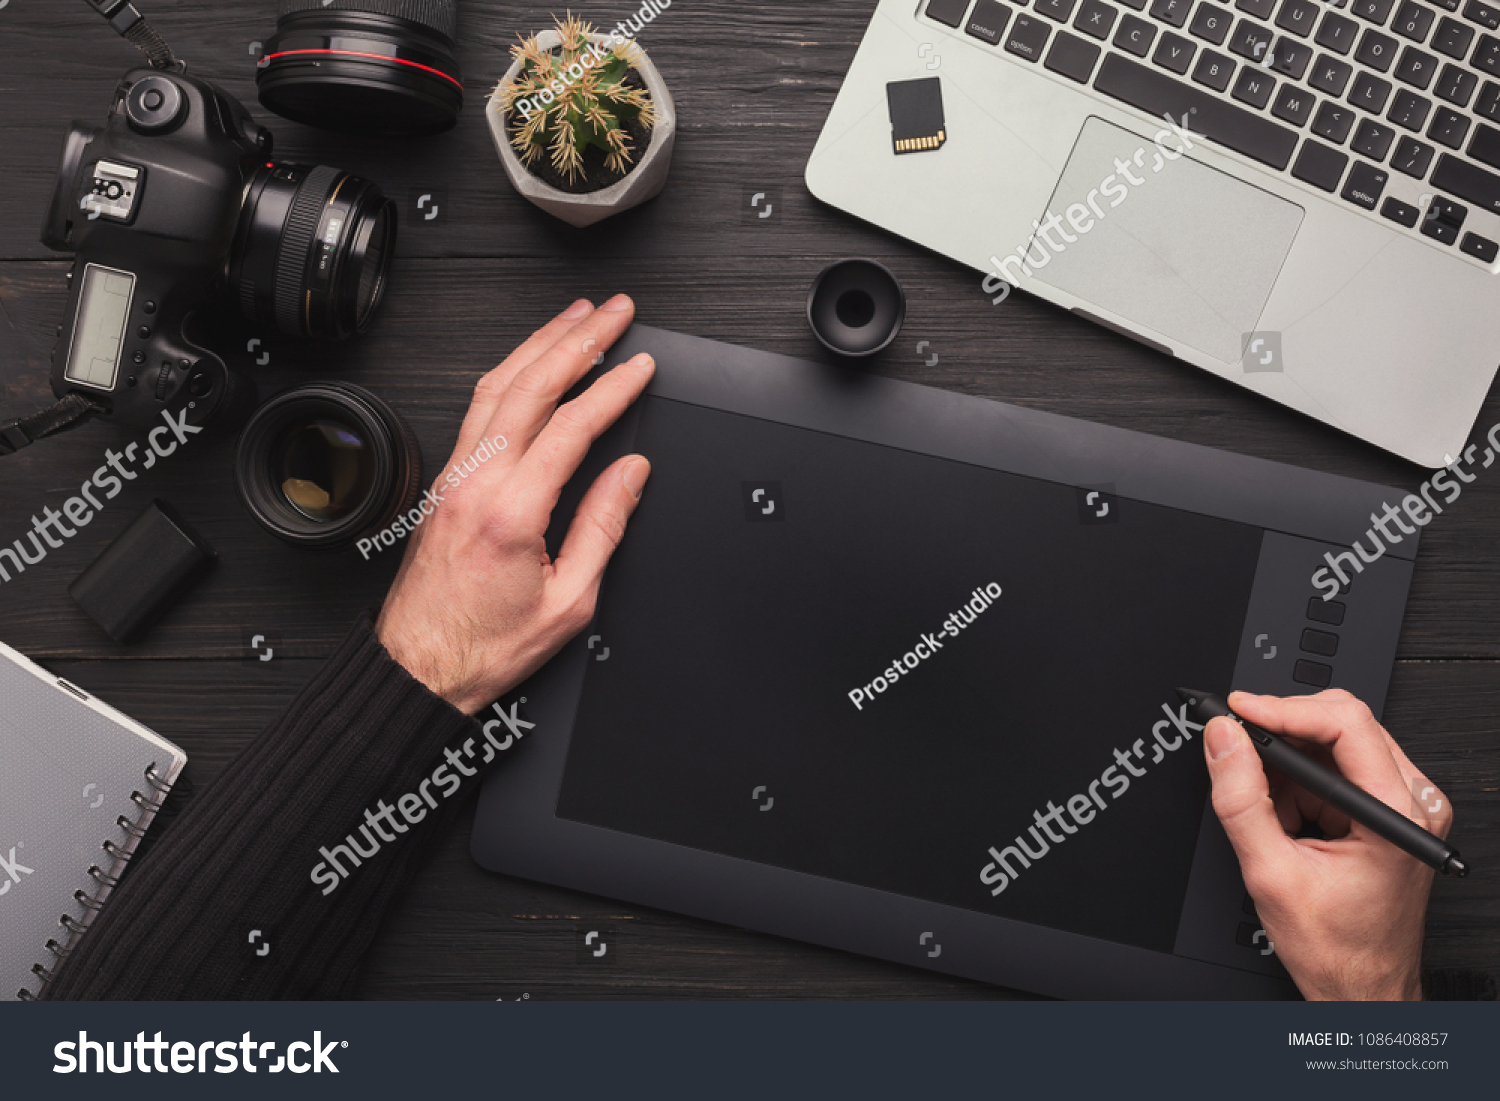 Top view on workplace of photographer. Creative designer hands working graphic tablet, photographic equipment on table #1086408857